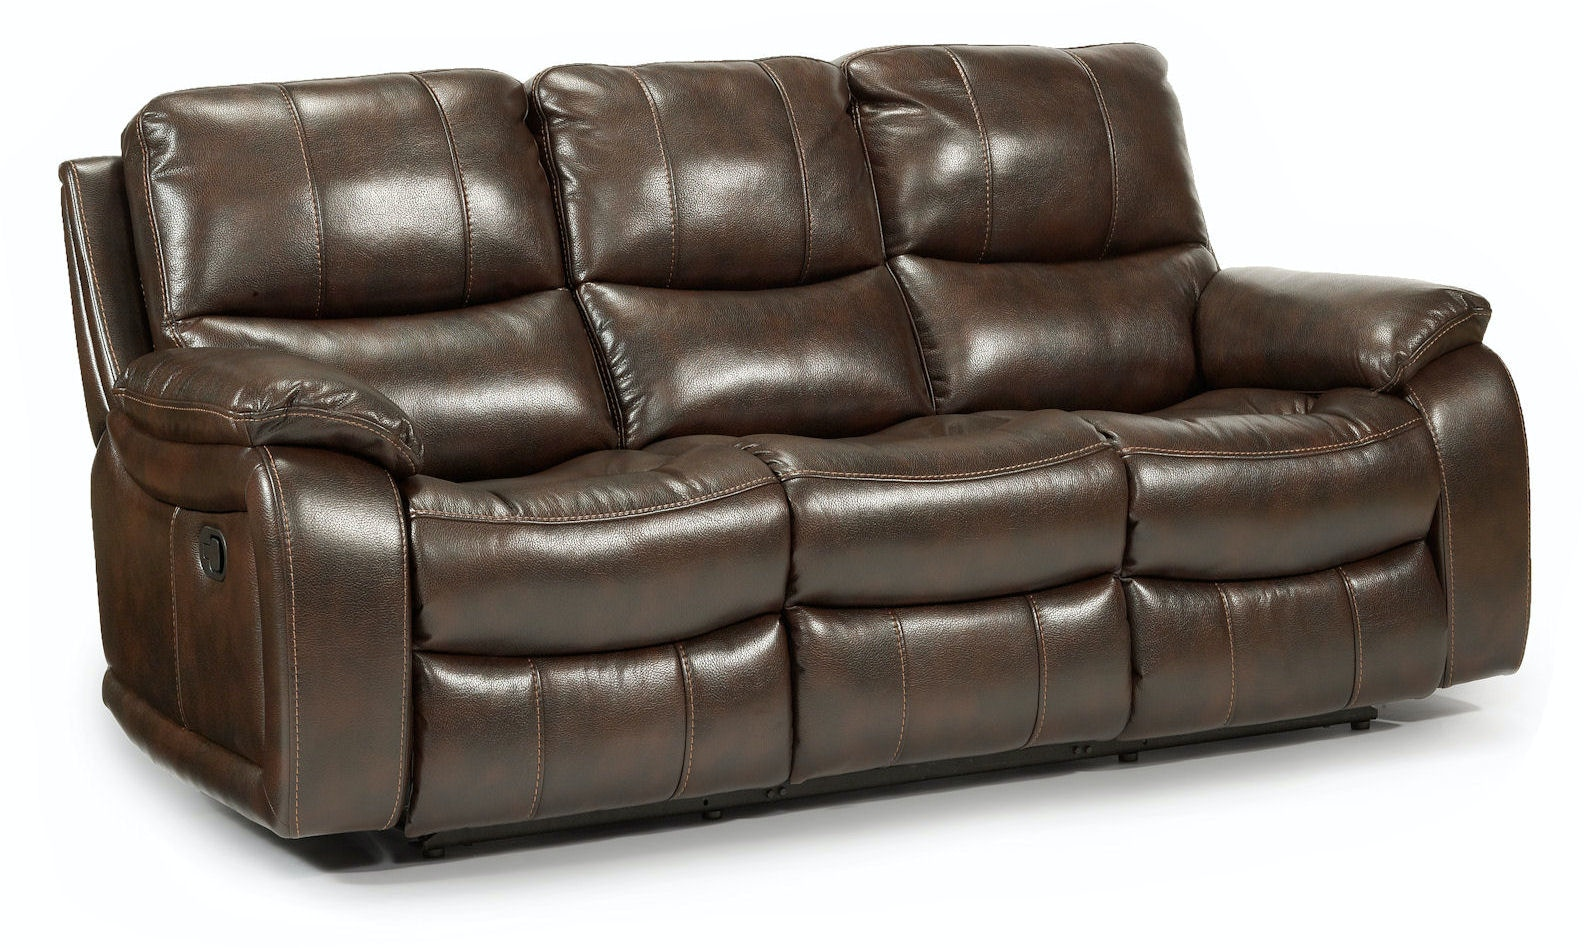 Flexsteel Woodstock Power Reclining Sofa 251141  sc 1 st  Talsma Furniture & Flexsteel Woodstock Power Reclining Sofa 251141 - Talsma Furniture ... islam-shia.org